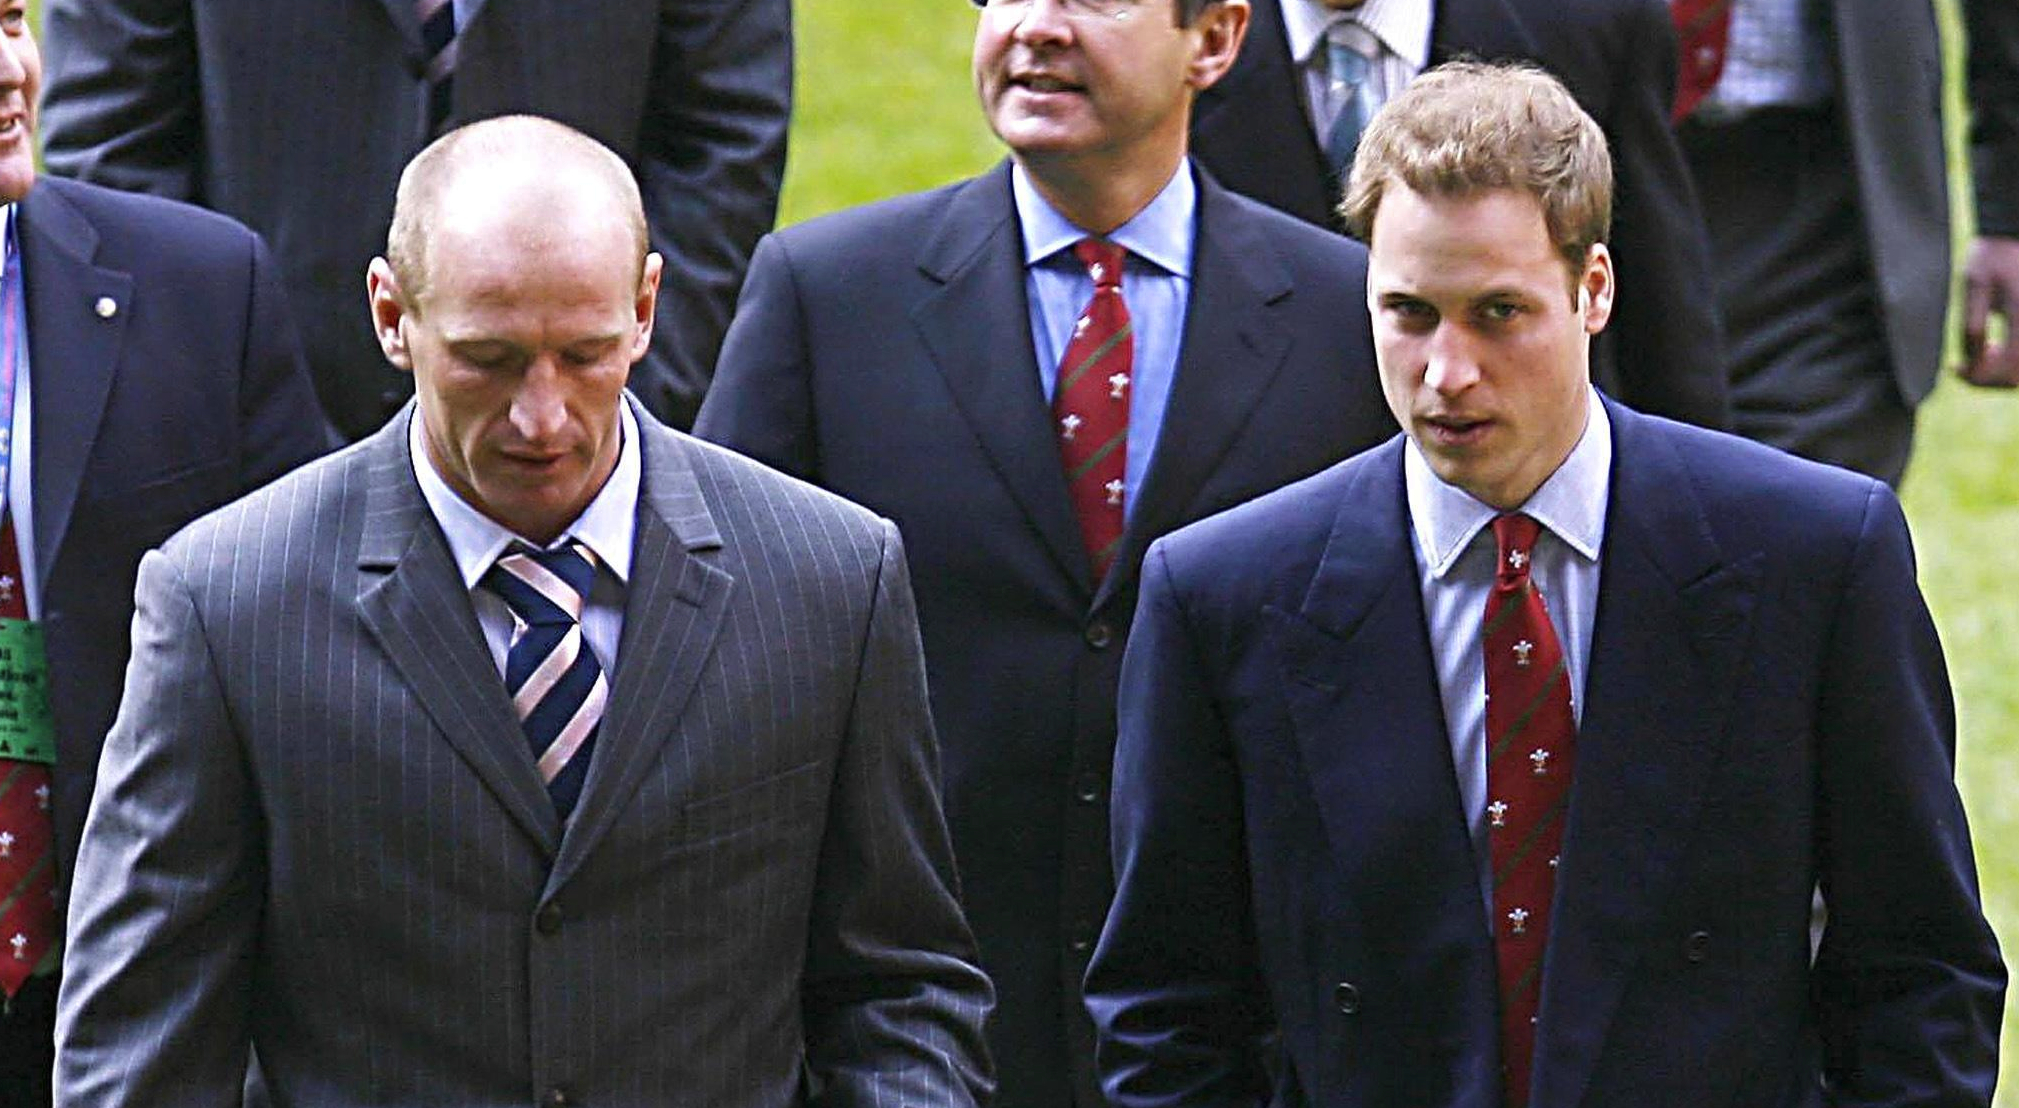 Prince William and Kate Middleton offer their support to 'legendary' Gareth Thomas